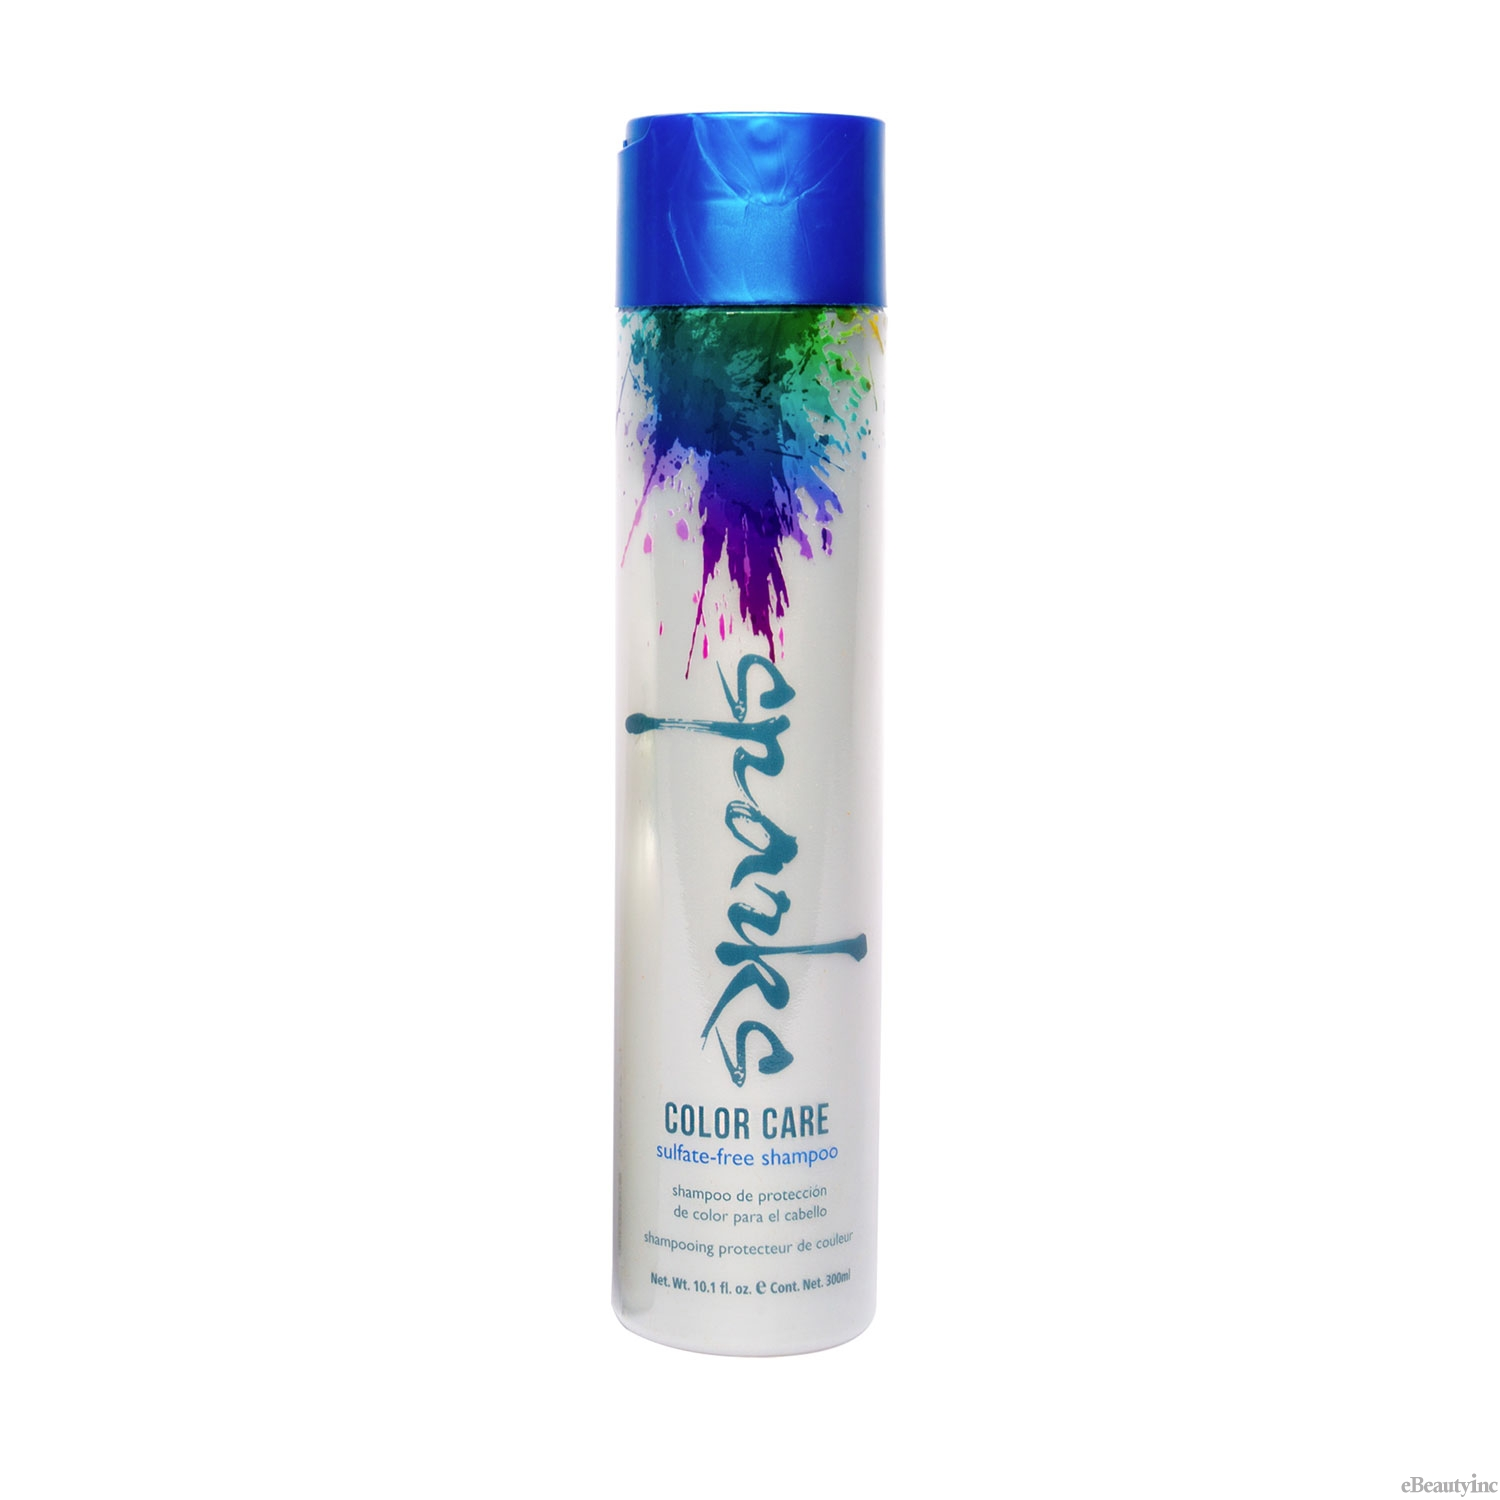 Image of Sparks Color Care Sulfate-free Hair Shampoo - 10.1oz